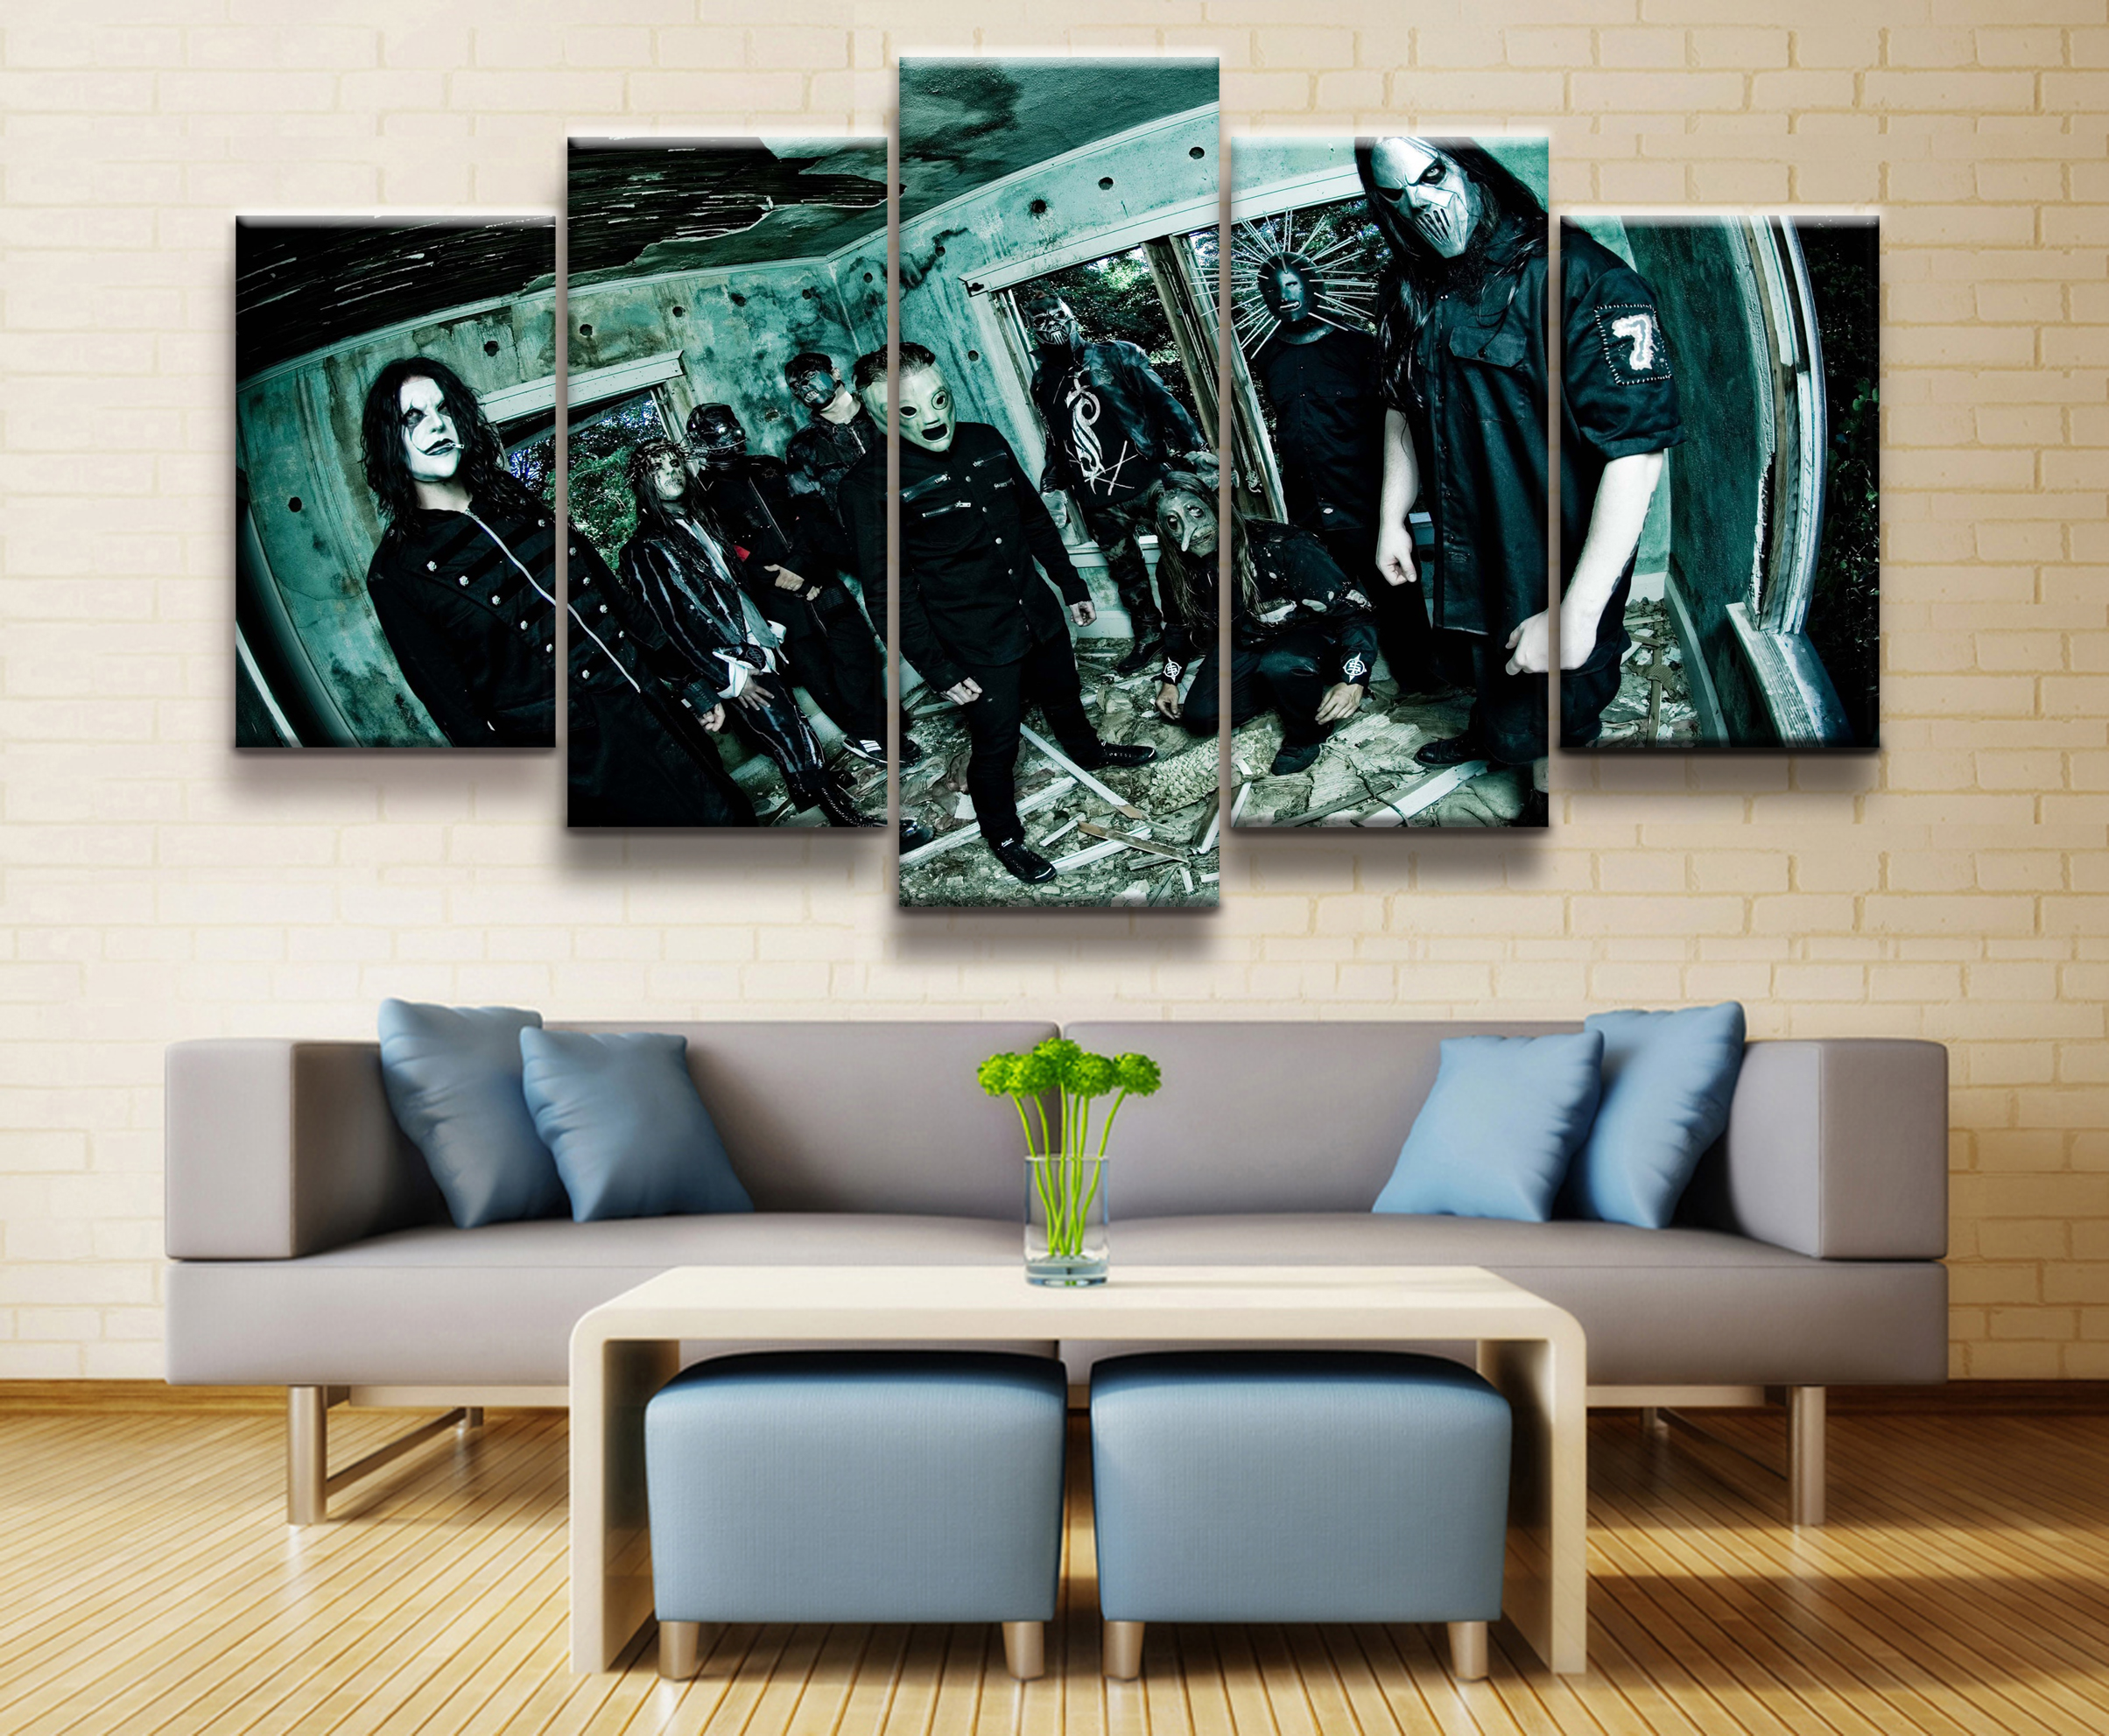 4 Panel My hero Academy Anime poster Canvas Printed Painting For Living Room Wall Art Decor Picture Artworks Poster